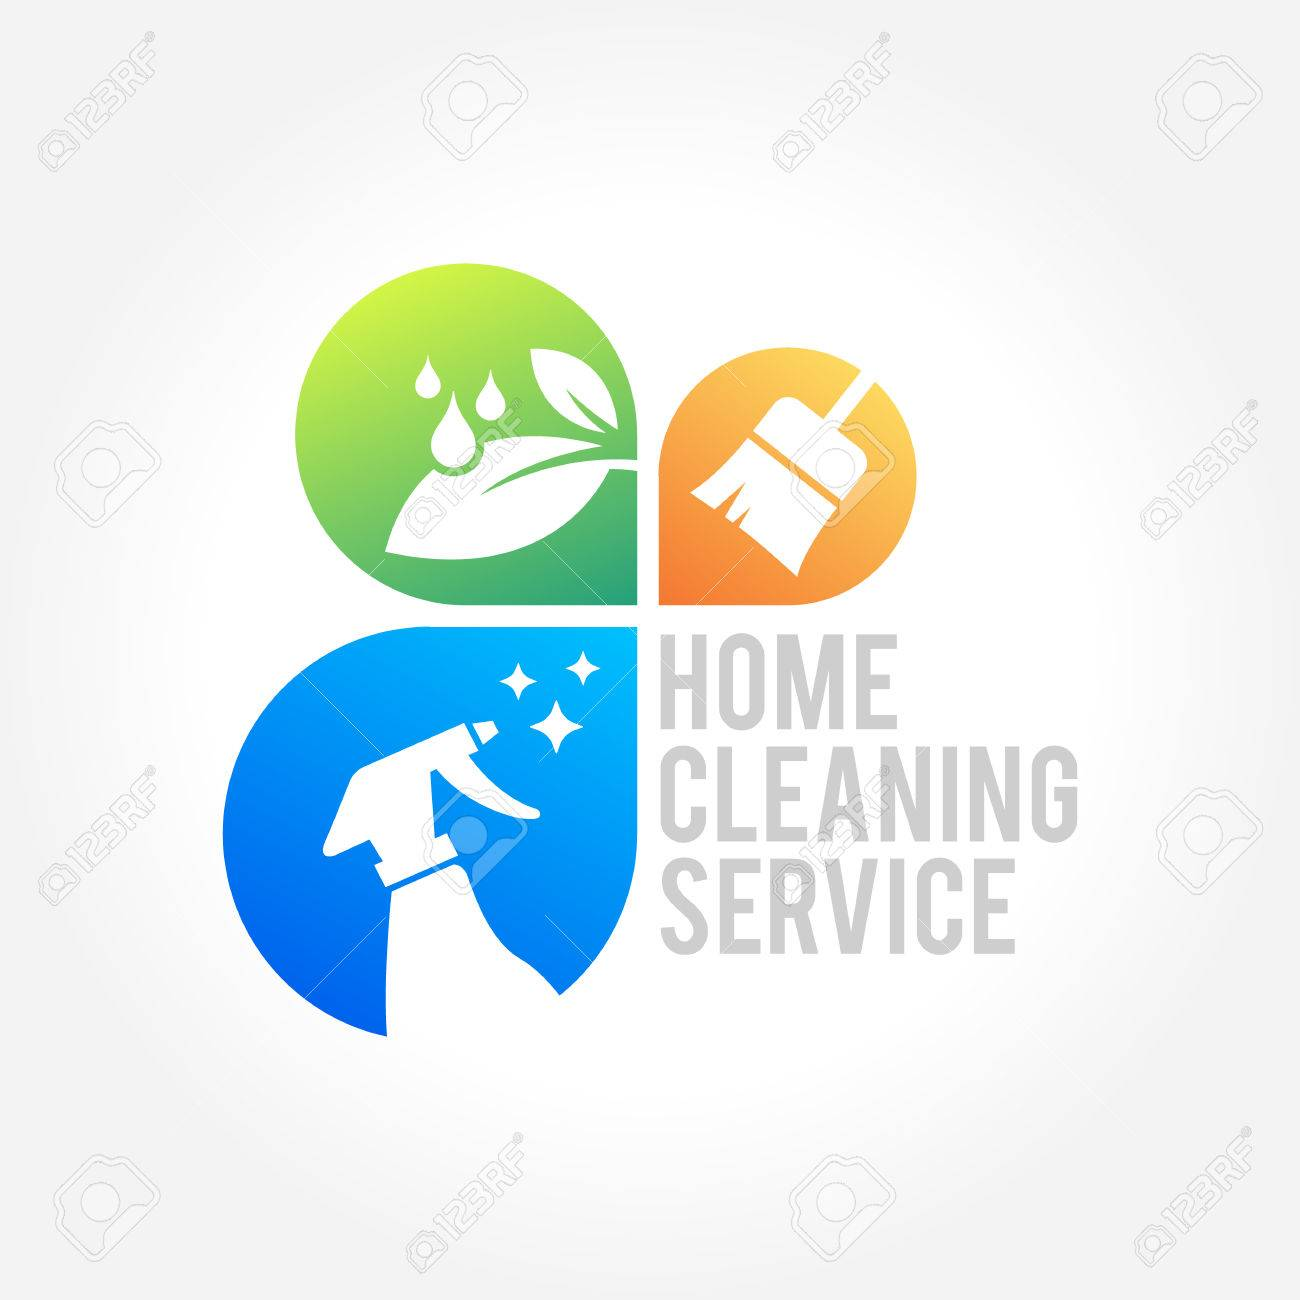 Cleaning Service Business Design, Eco Friendly Concept For Interior ...